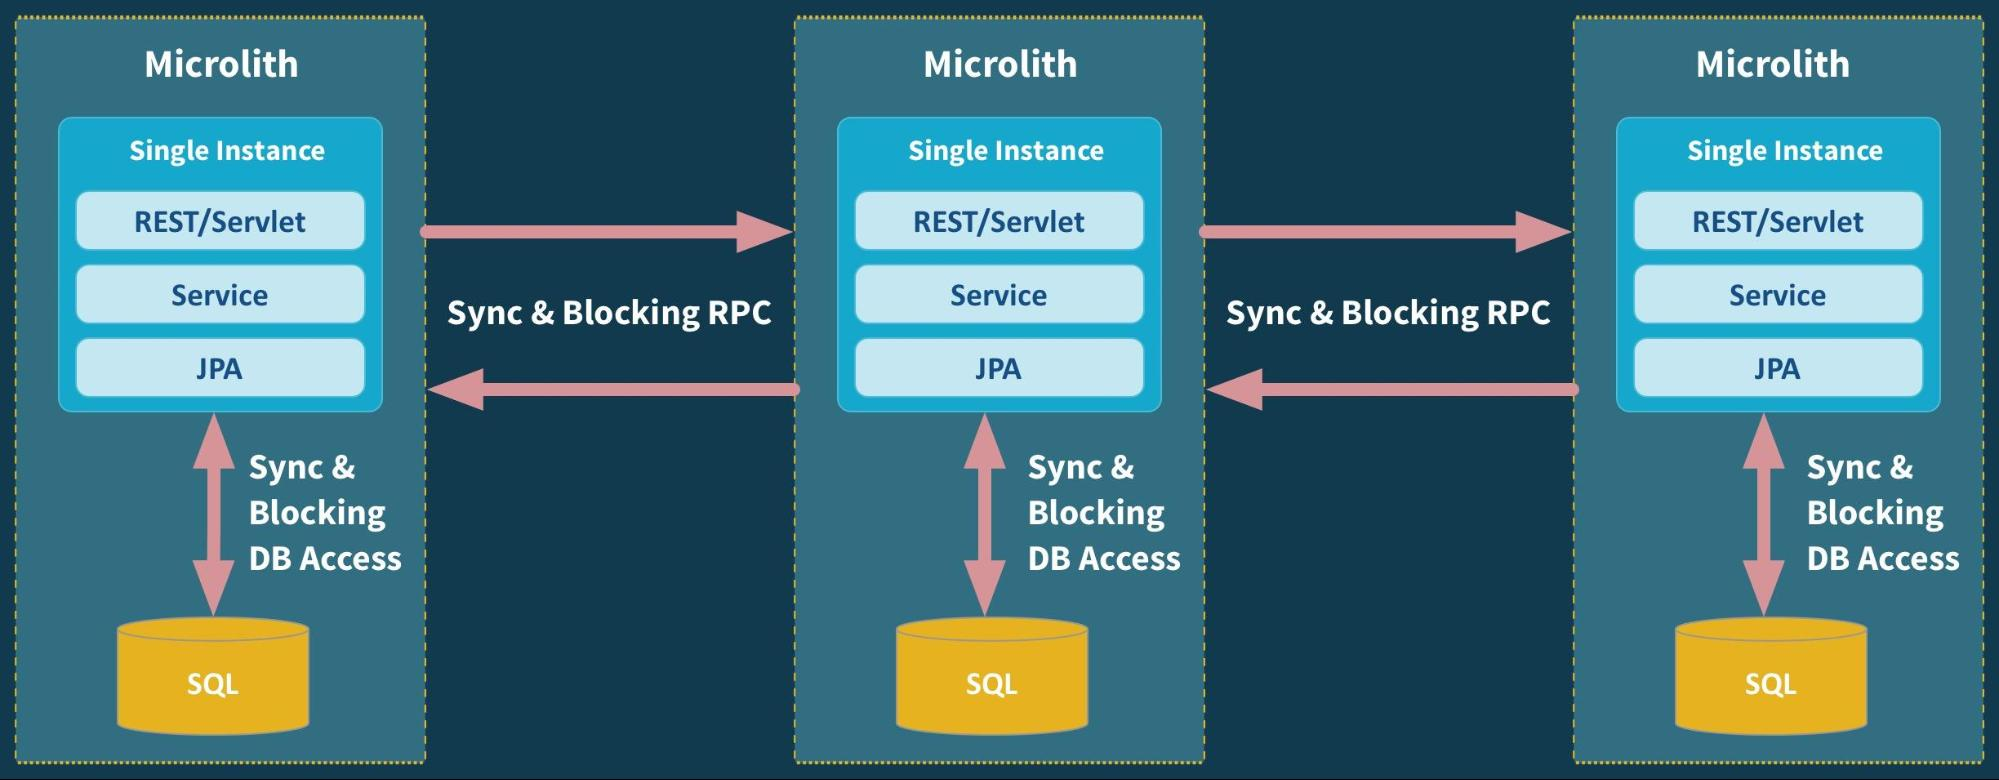 Are we building Microservices or Microliths?